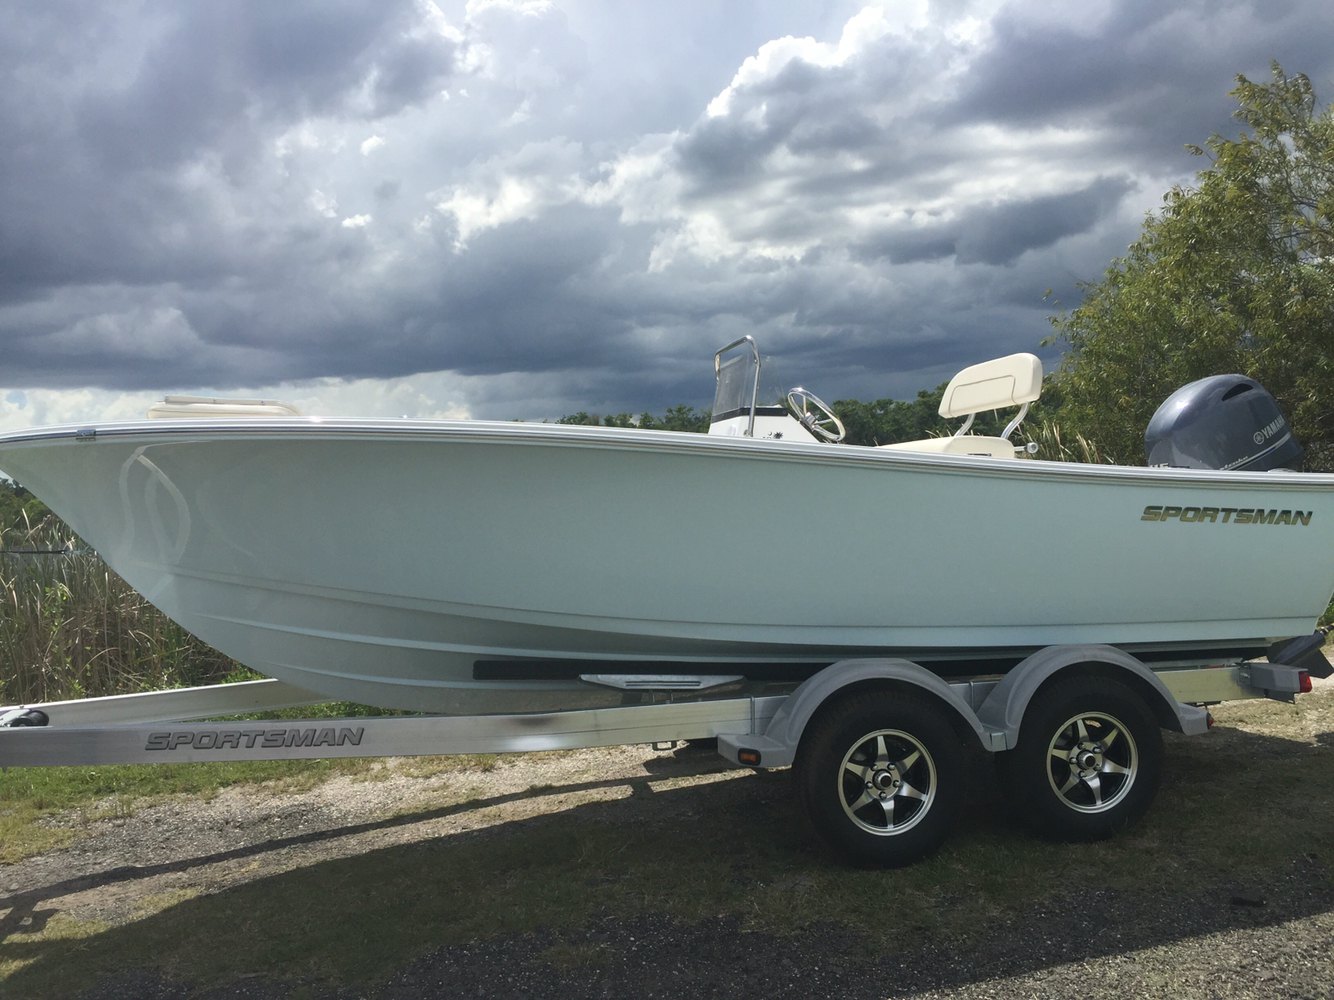 Sportsman Boats 19 ISLAND REEF